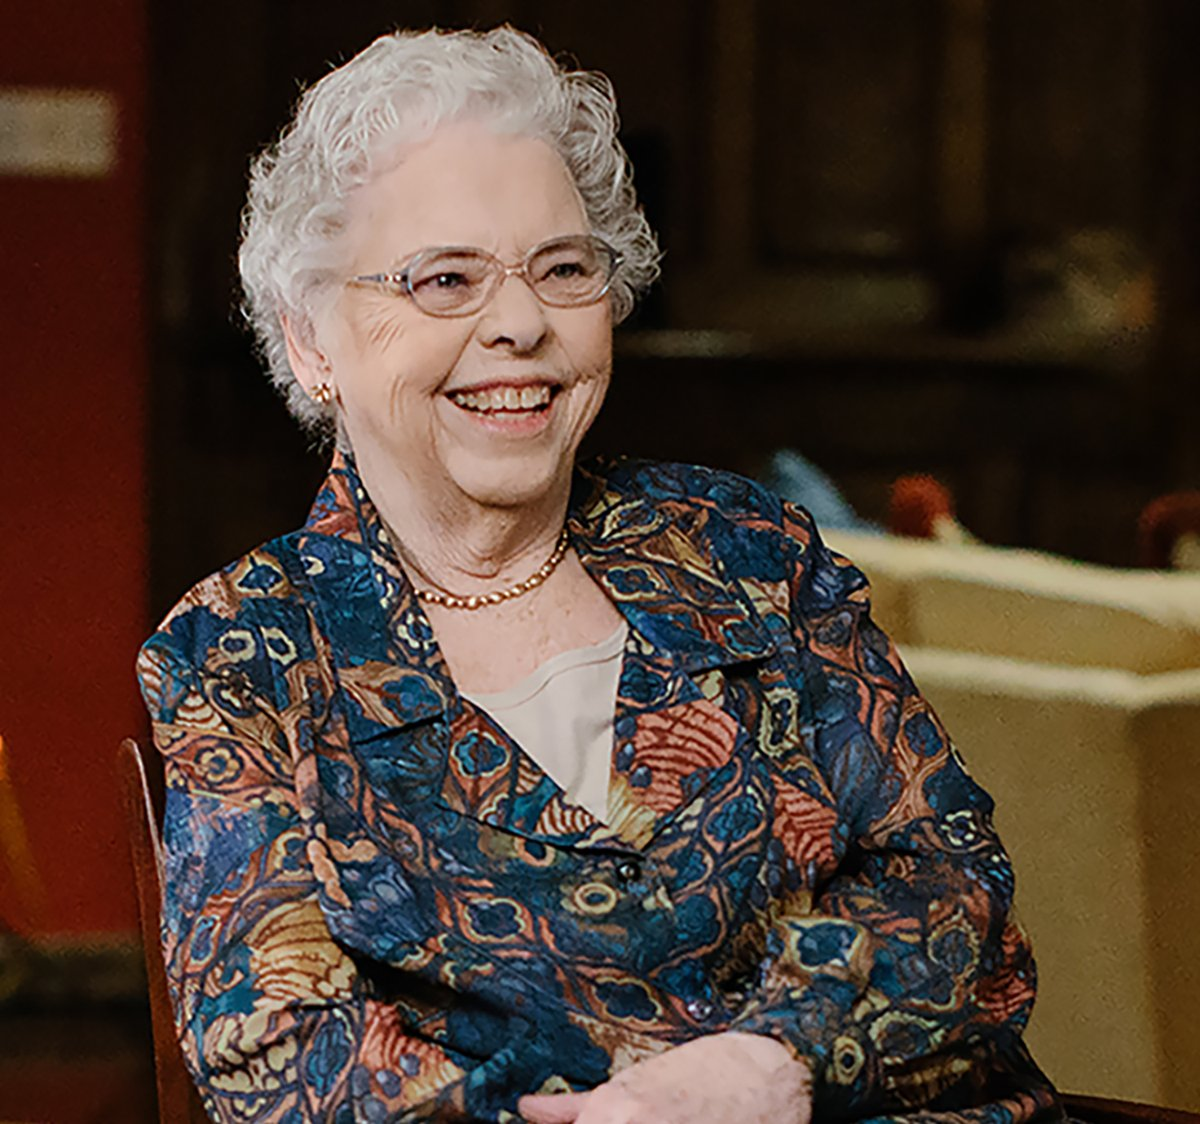 (1/2) Fred Rogers Productions is deeply saddened by the passing of Joanne Rogers. The loving partner of Fred Rogers for more than 50 years, she continued their shared commitment to supporting children and families after his death as chair of the board of Fred Rogers Productions.